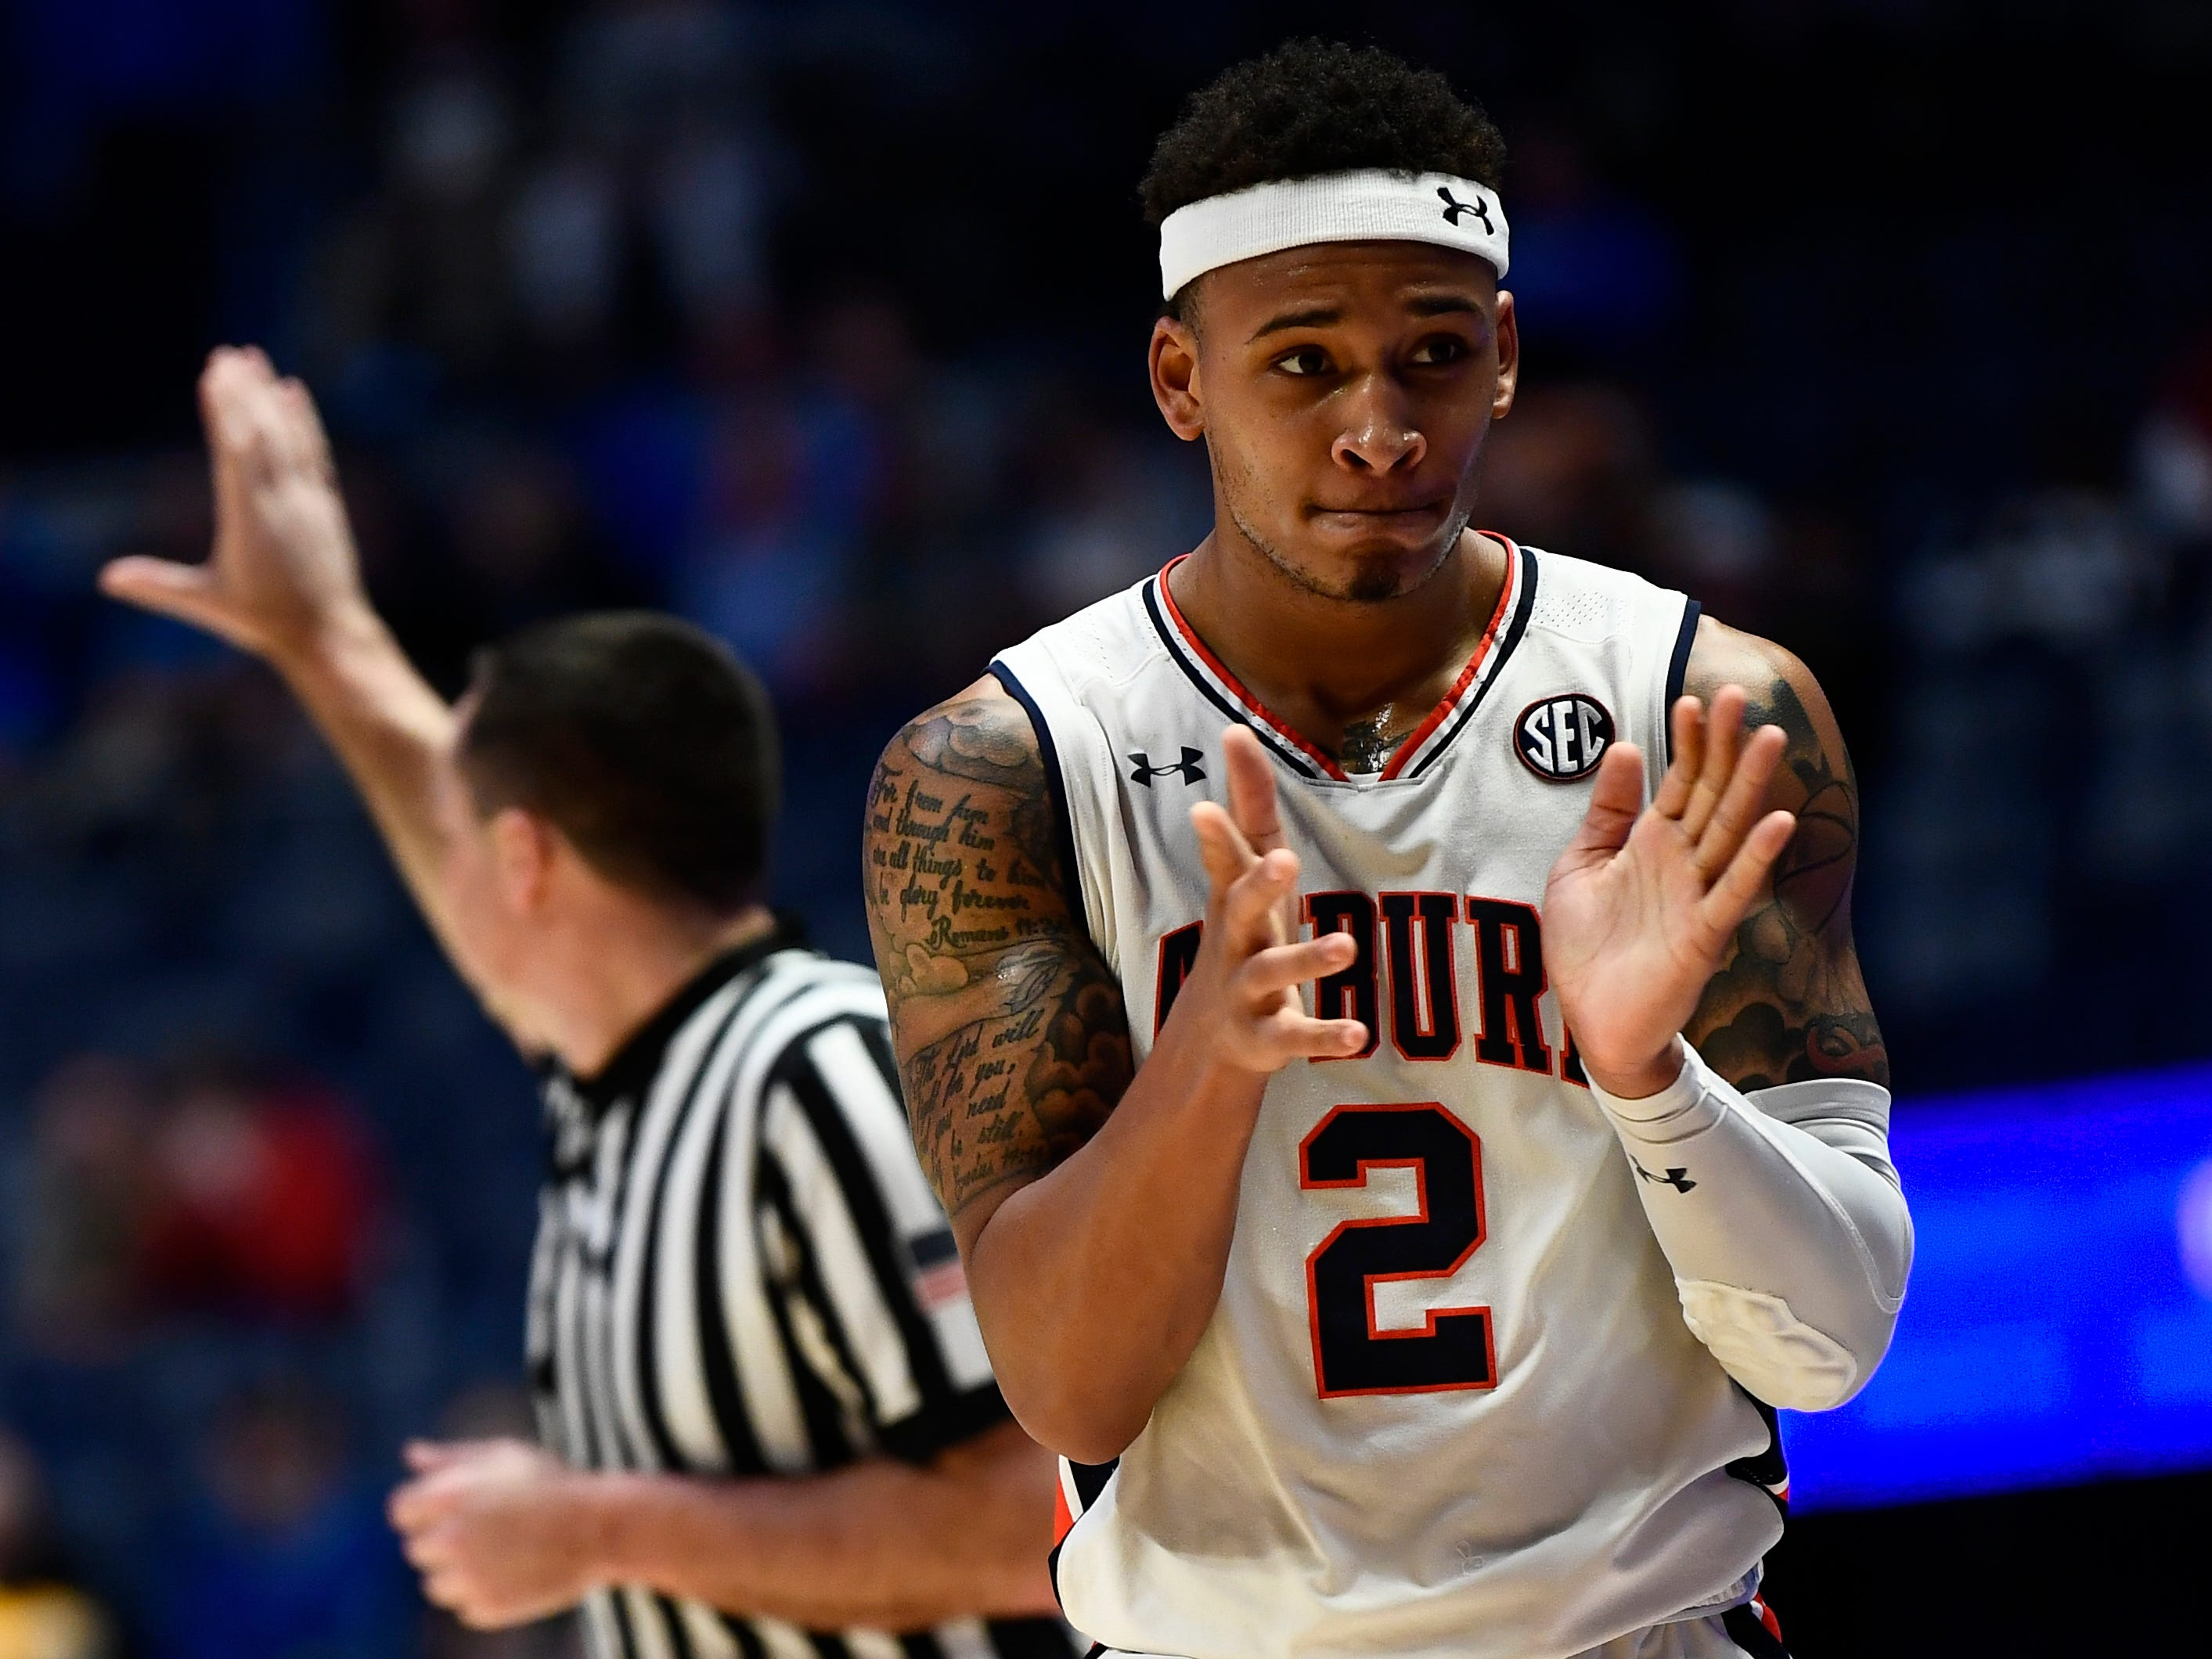 Auburn guard Bryce Brown (2) celebrates in the closing seconds of the second half of the SEC Men's Basketball Tournament game at Bridgestone Arena in Nashville, Tenn., Thursday, March 14, 2019.